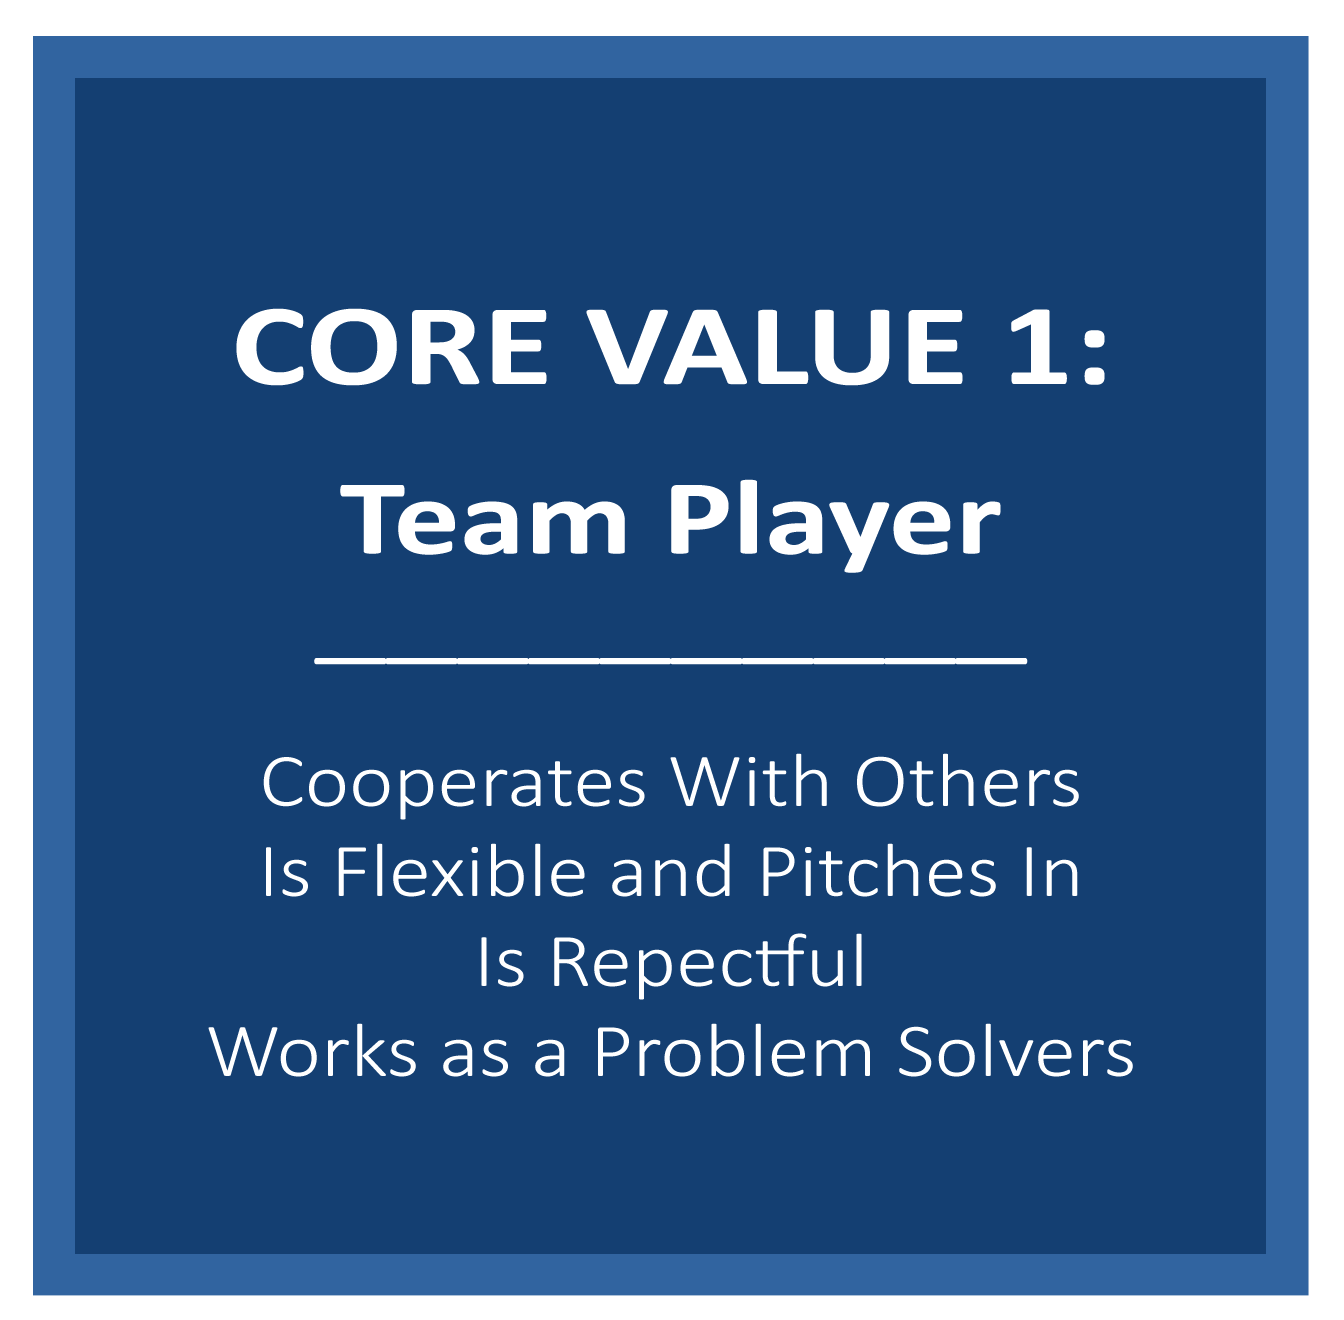 corevalue1.png